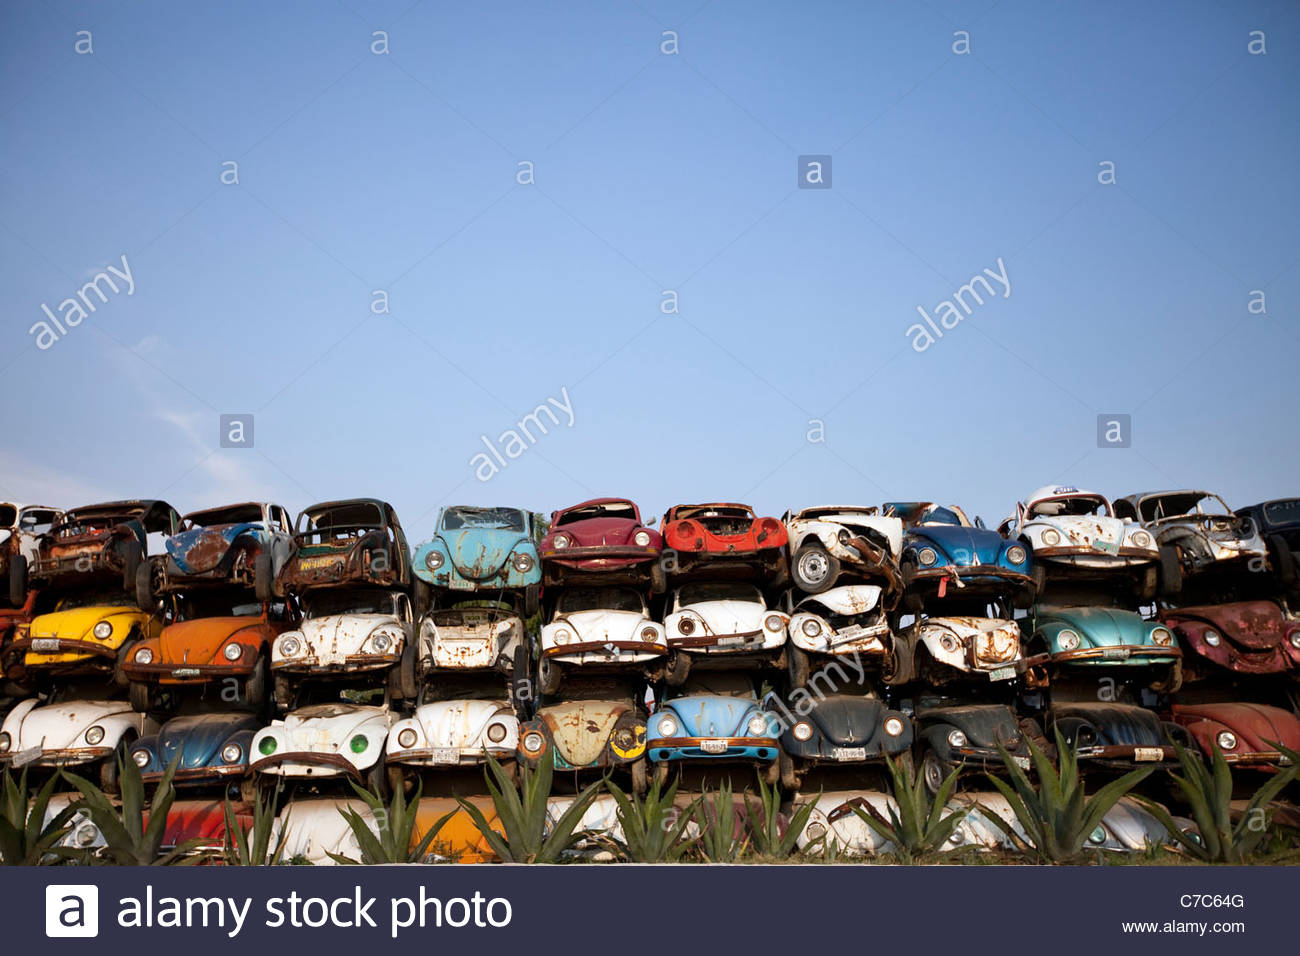 Type Of Beetle Stock Photos & Type Of Beetle Stock Images